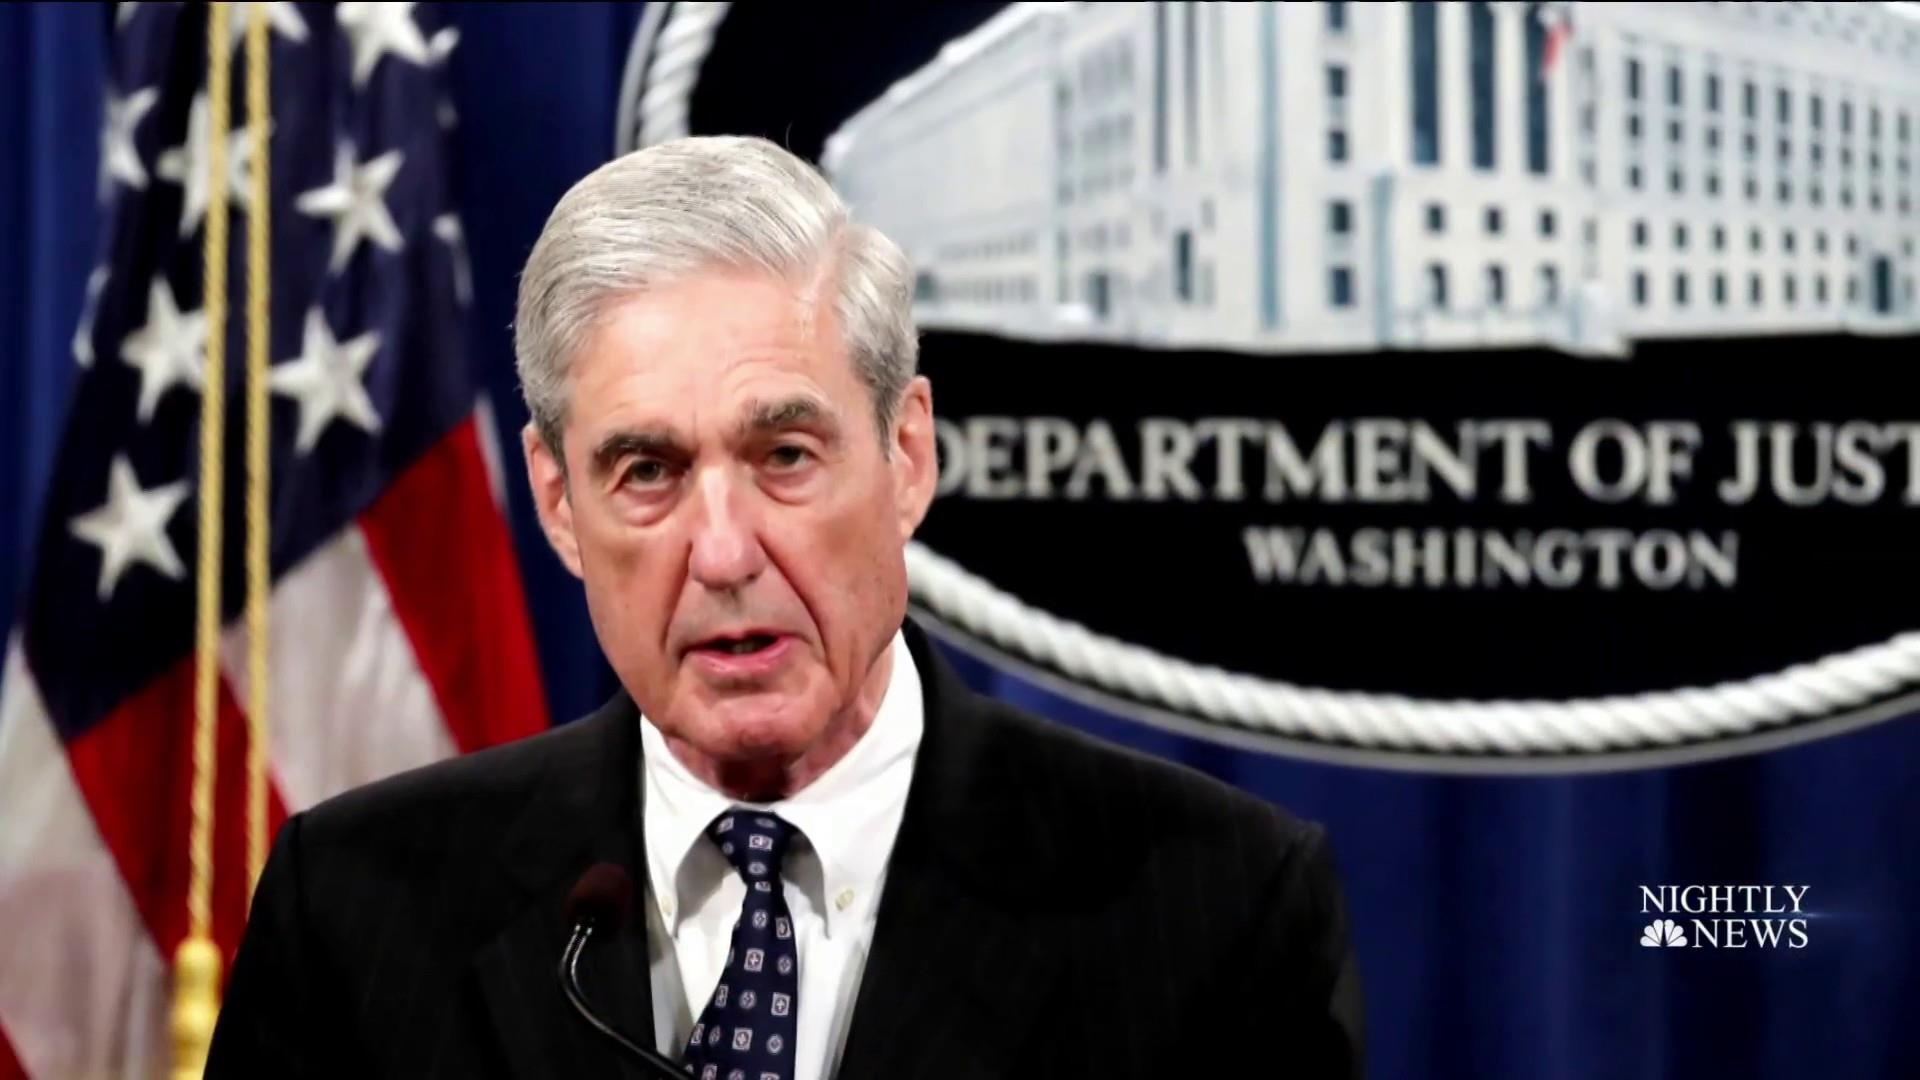 Mueller submits to subpoenas, agrees to testify in public